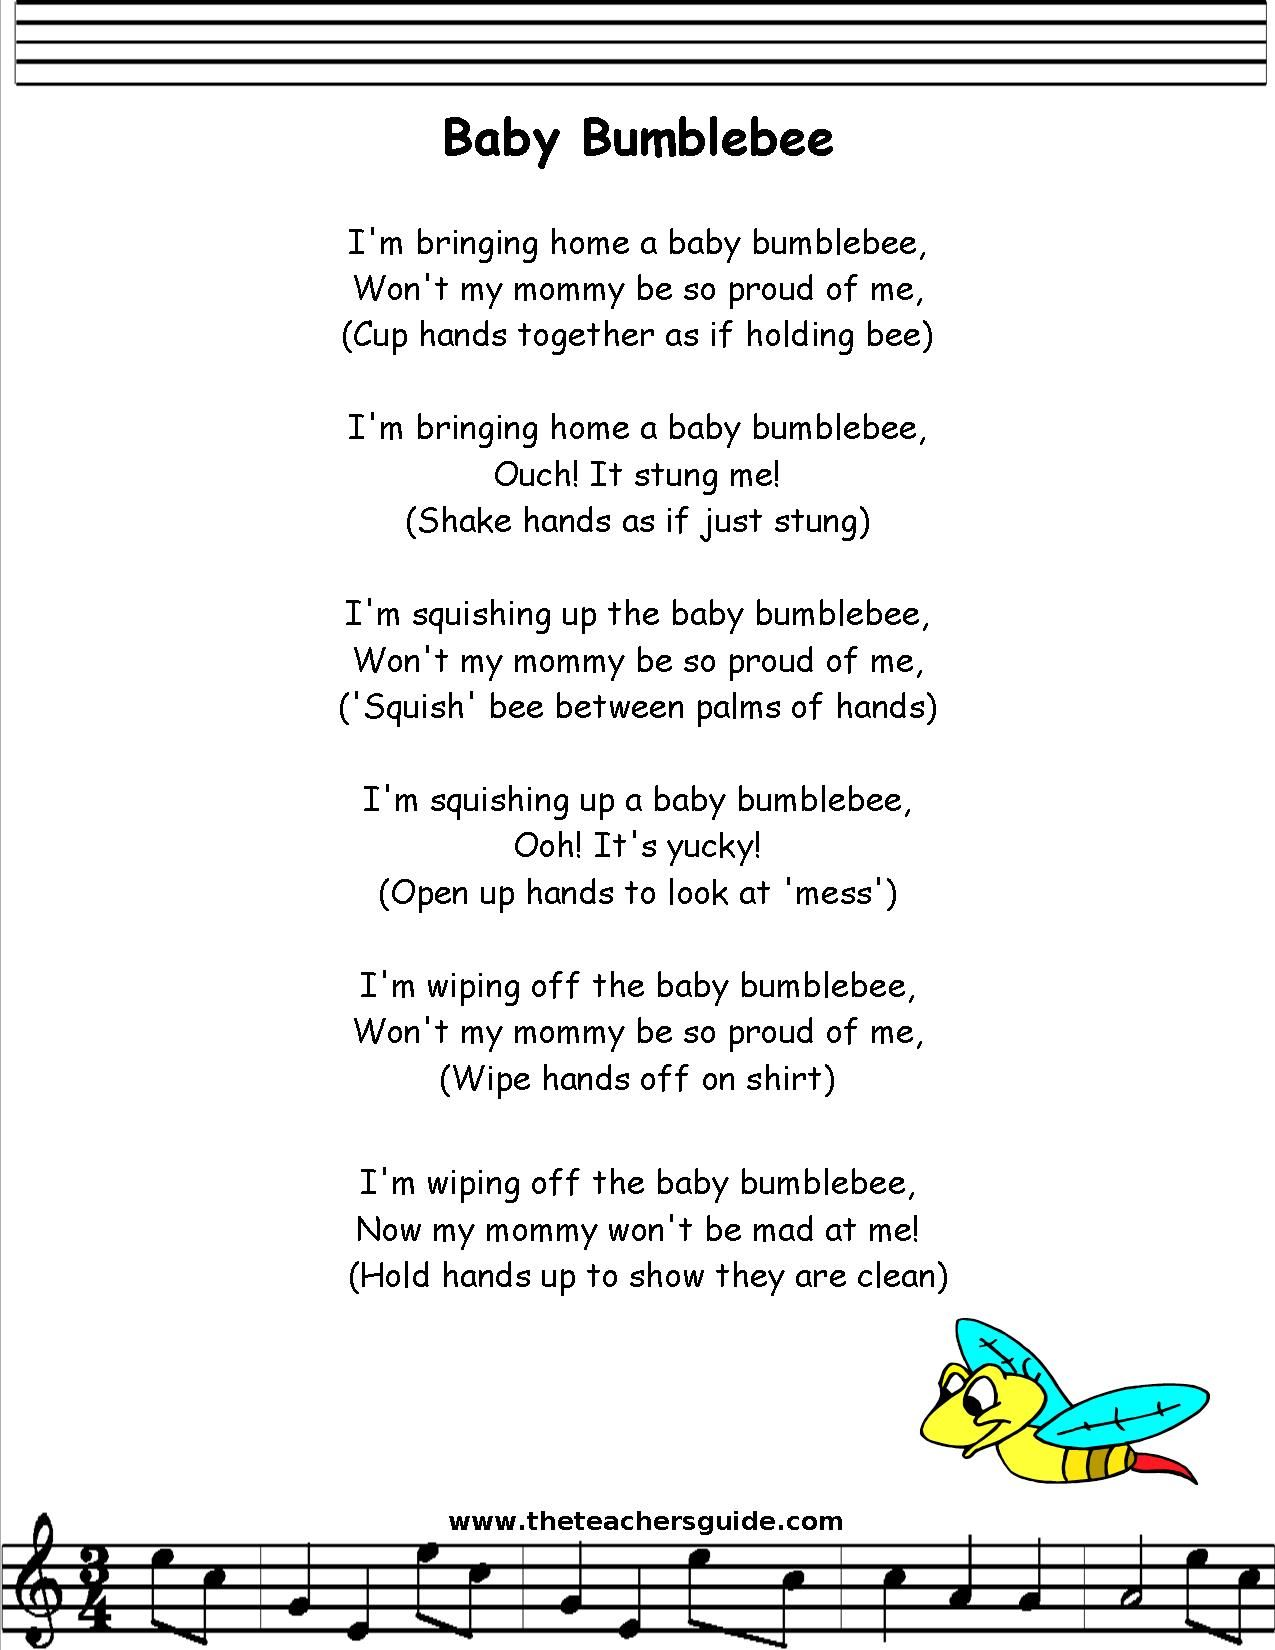 Who Stole The Cookie From The Cookie Jar Lyrics Mesmerizing Babybumble Bee Lyrics Printout  Kids Stuff  Pinterest  Bees Design Decoration